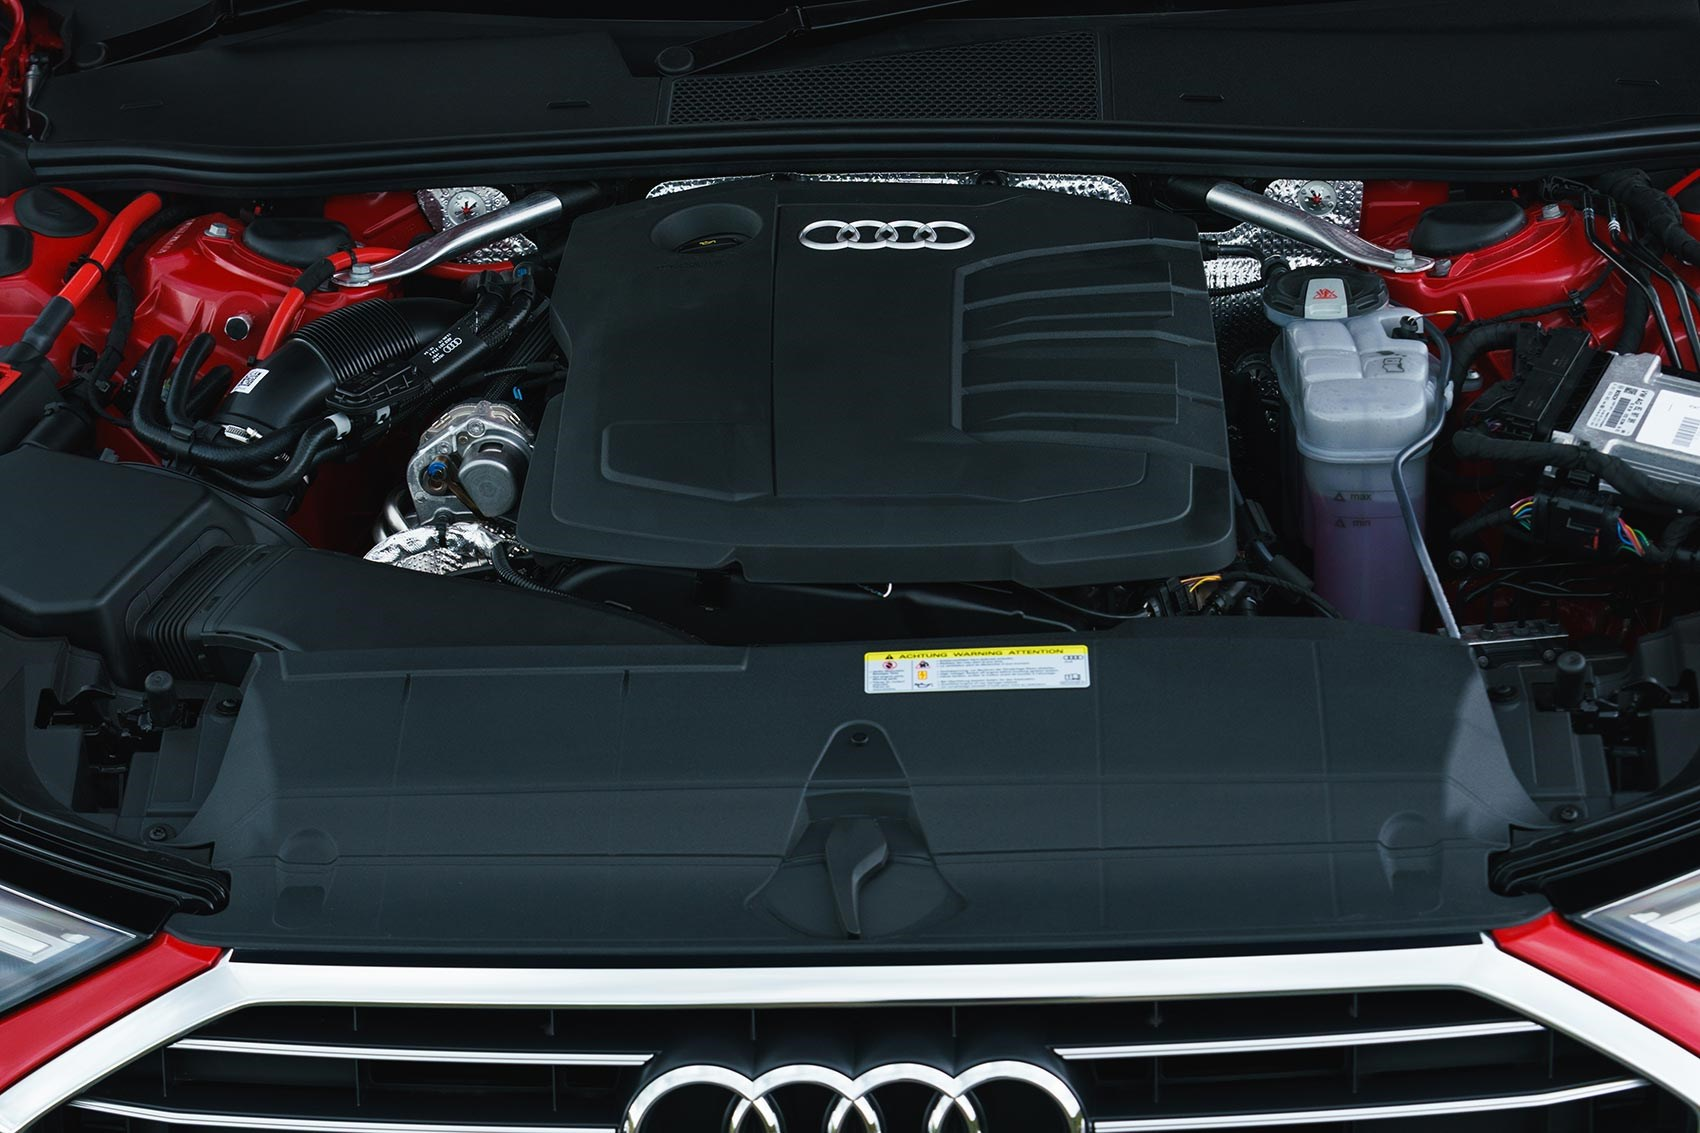 Diesel engines will predominate in the new Audi A6 for the time being